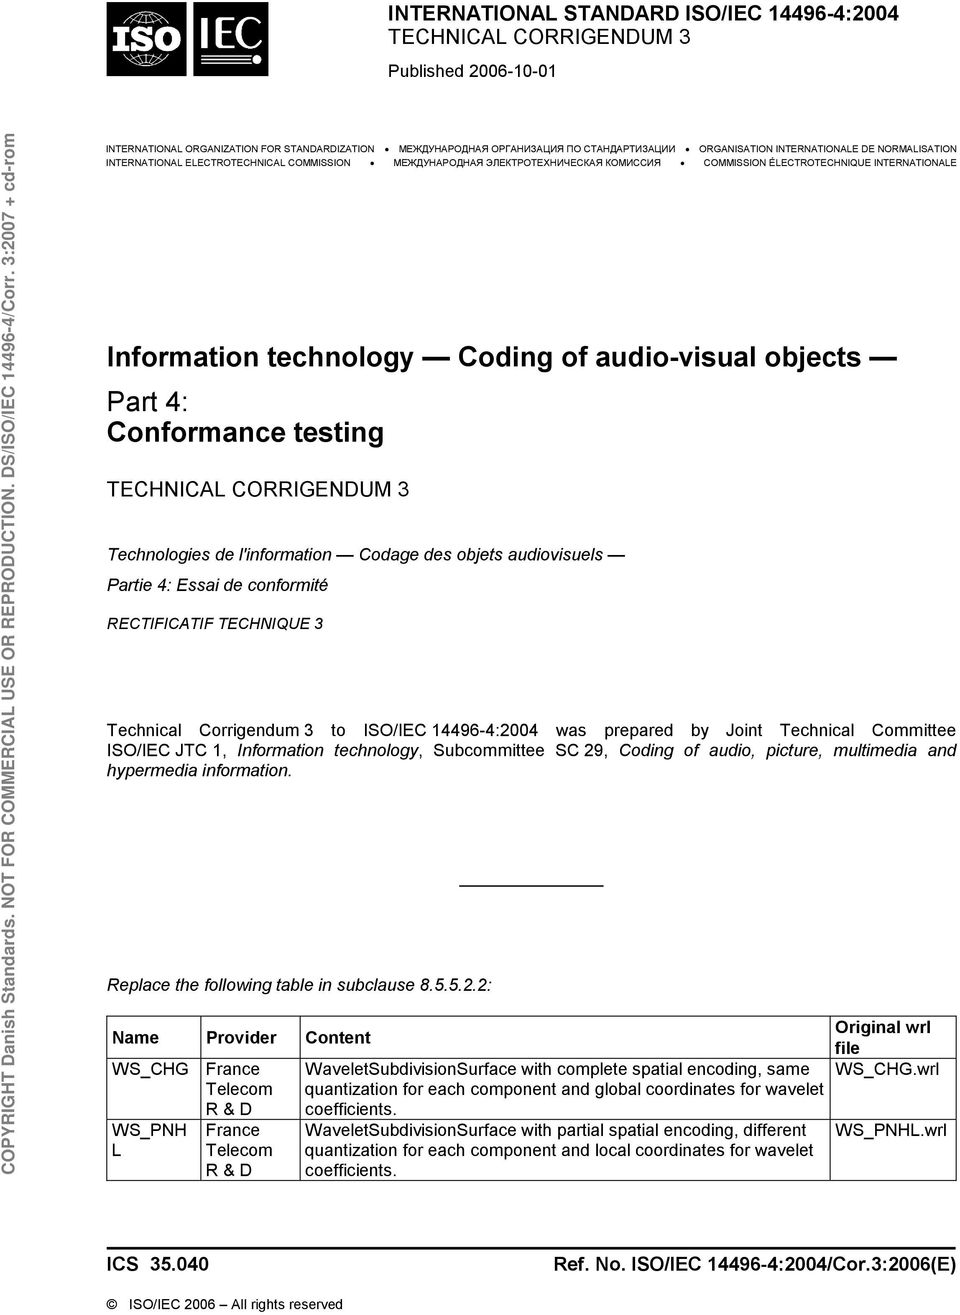 audio-visual objects Part 4: Conformance testing TECHNICAL CORRIGENDUM 3 Technologies de l'information Codage des objets audiovisuels Partie 4: Essai de conformité RECTIFICATIF TECHNIQUE 3 Technical